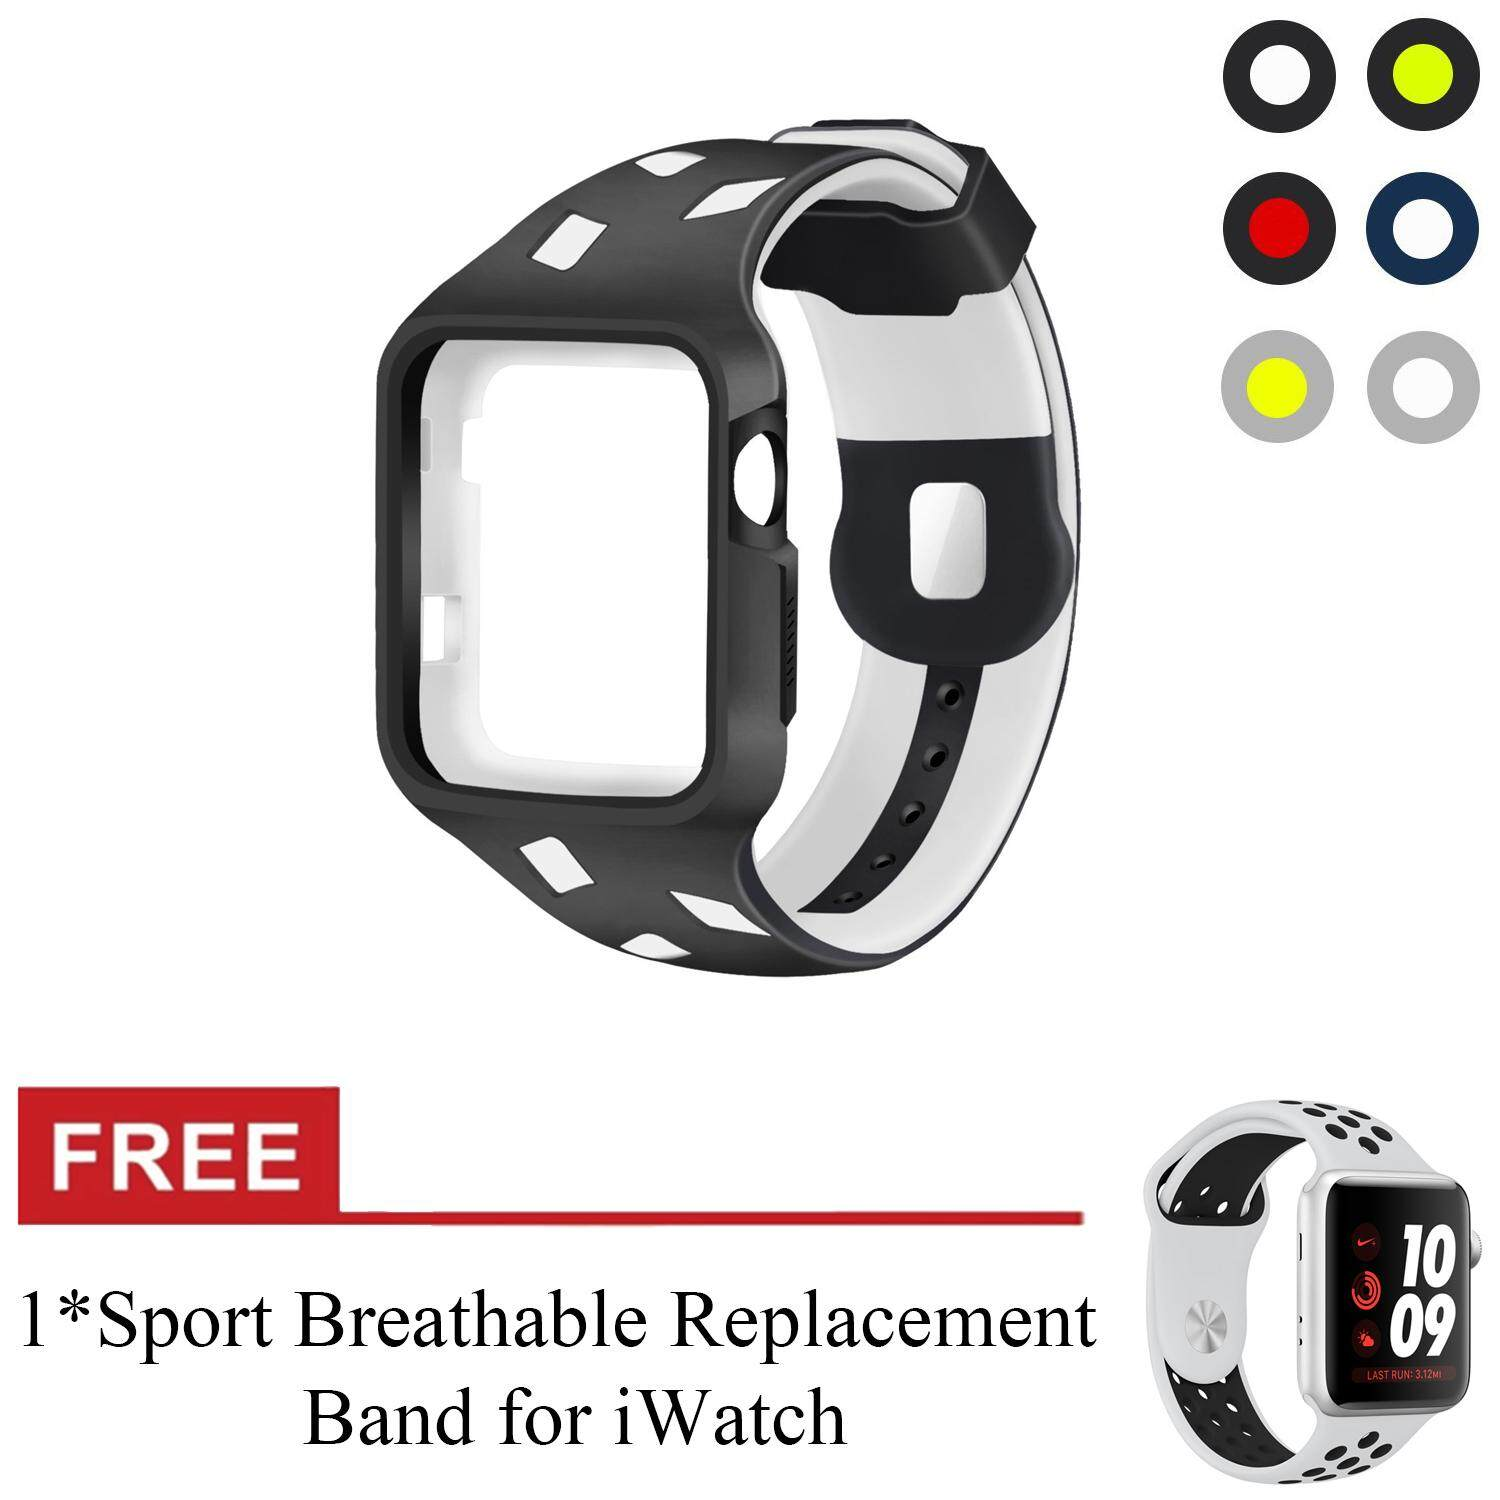 Cek Harga Apple Watch Series 3 Nike 42mm Space Grey Aluminum Case Sereis 1 Alumunium Sport Smartwatch Black For Band Silicone Replacement Iwatch Strap Waterproof